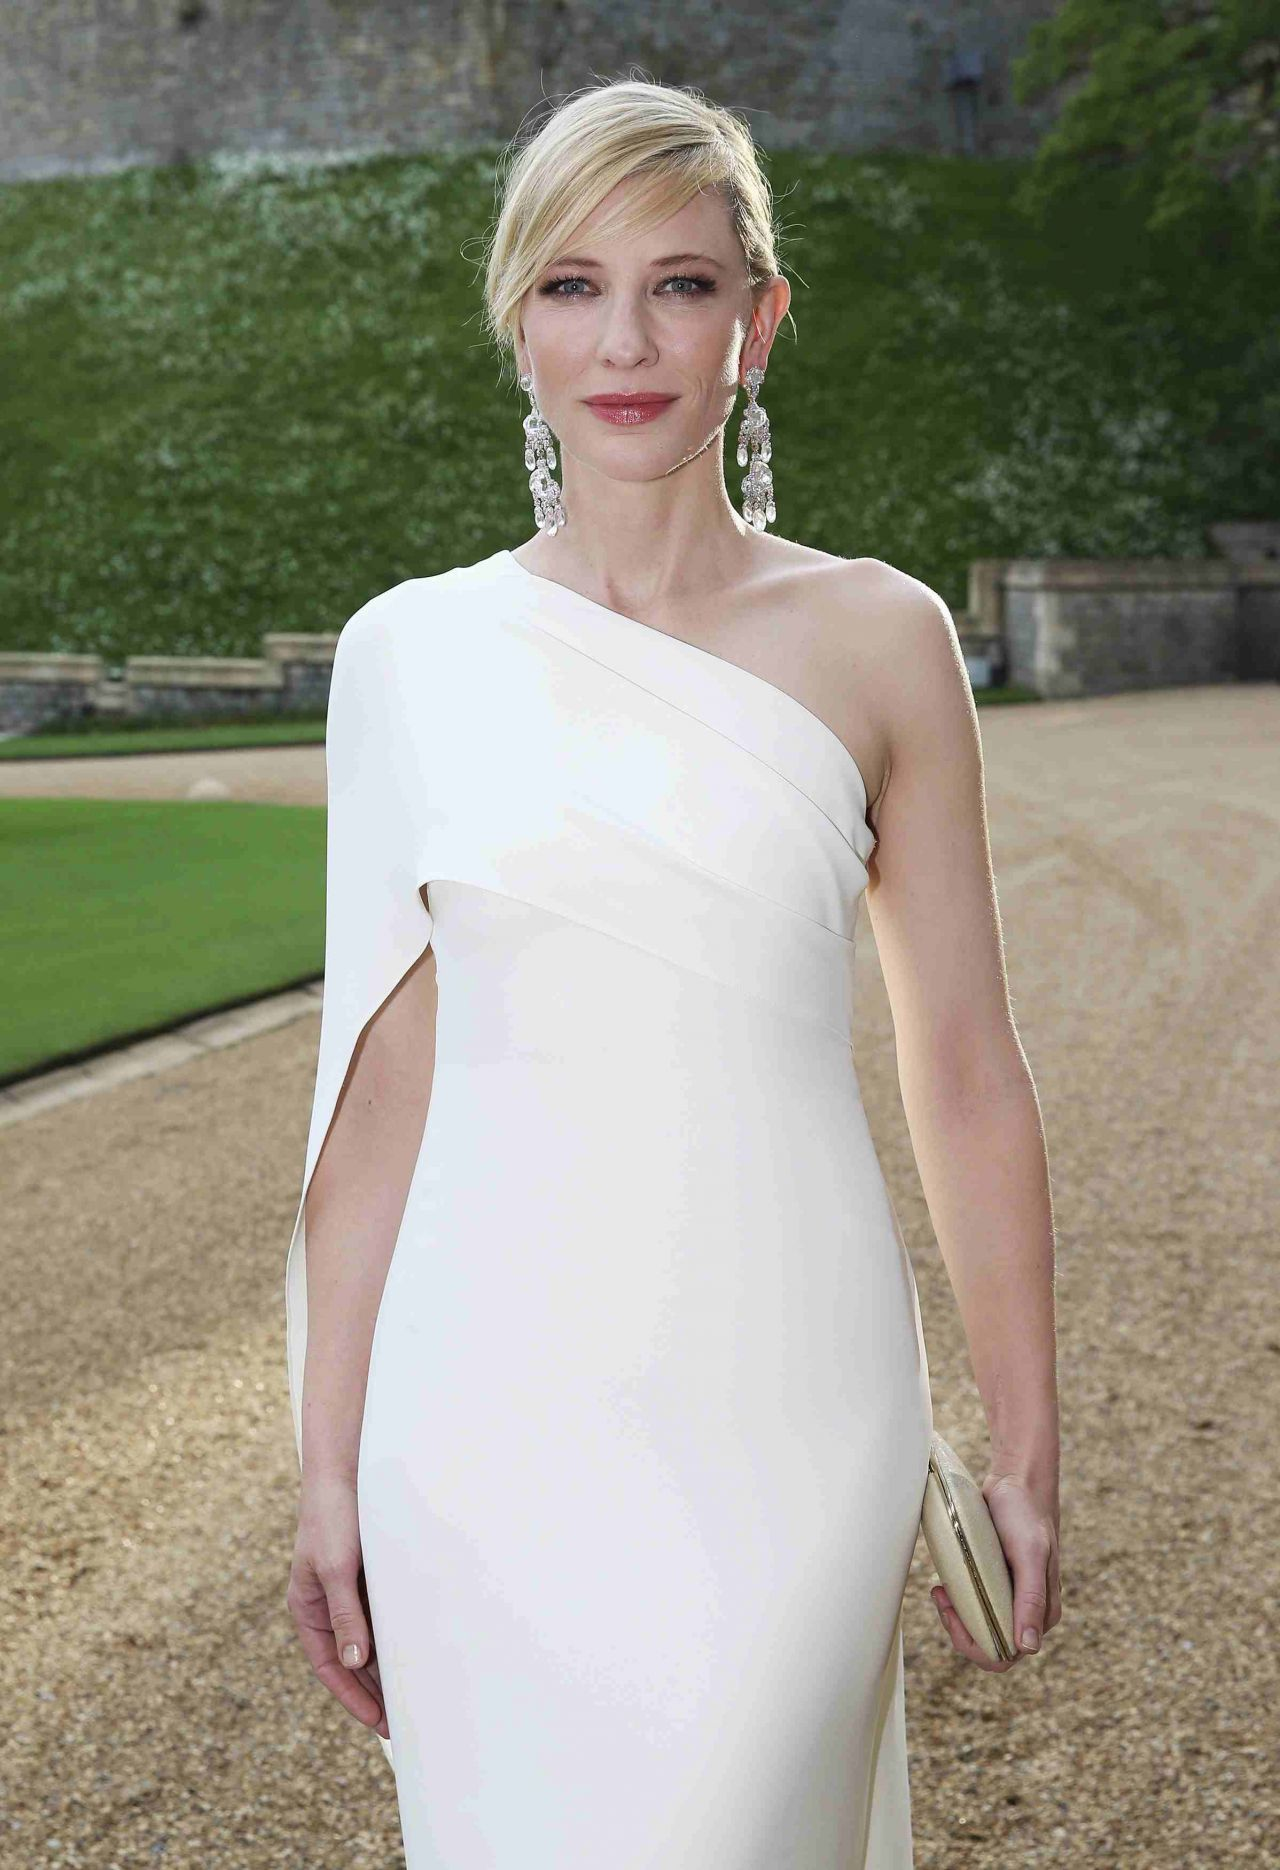 Cate Blanchett Wearing Ralph Lauren Gown – The Duke of Cambridge Celebrates The Royal Marsden in Windsor